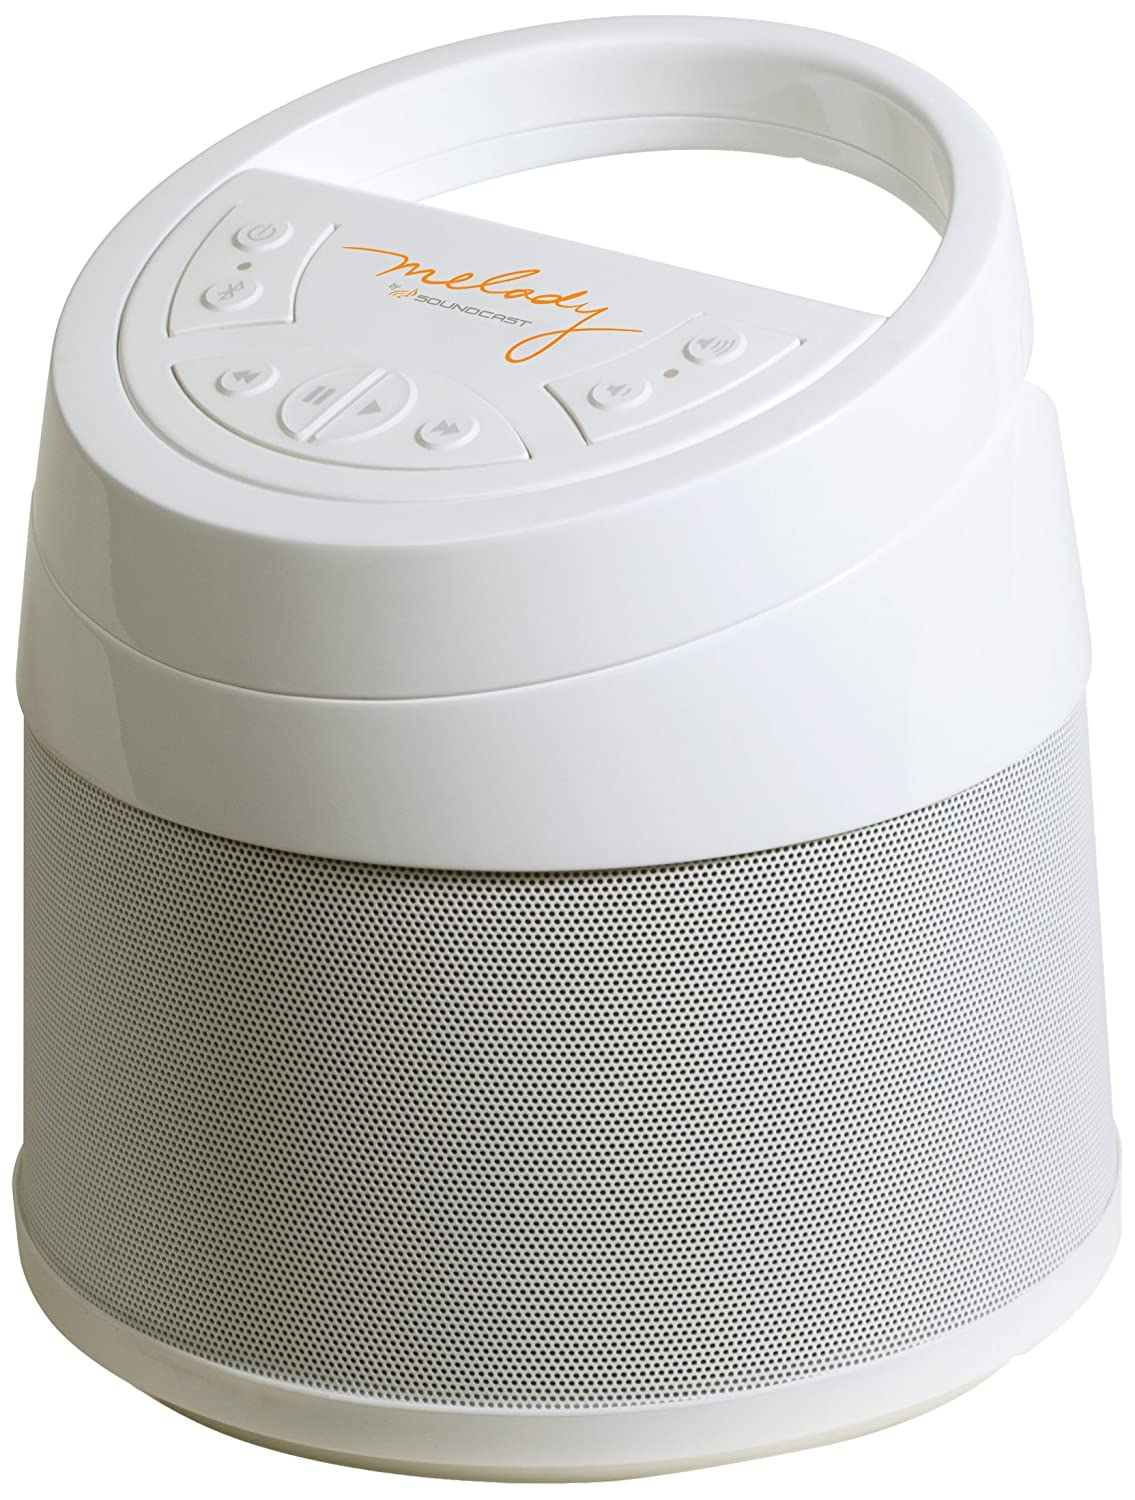 Soundcast Melody Bluetooth Wireless Speaker, White MLD414